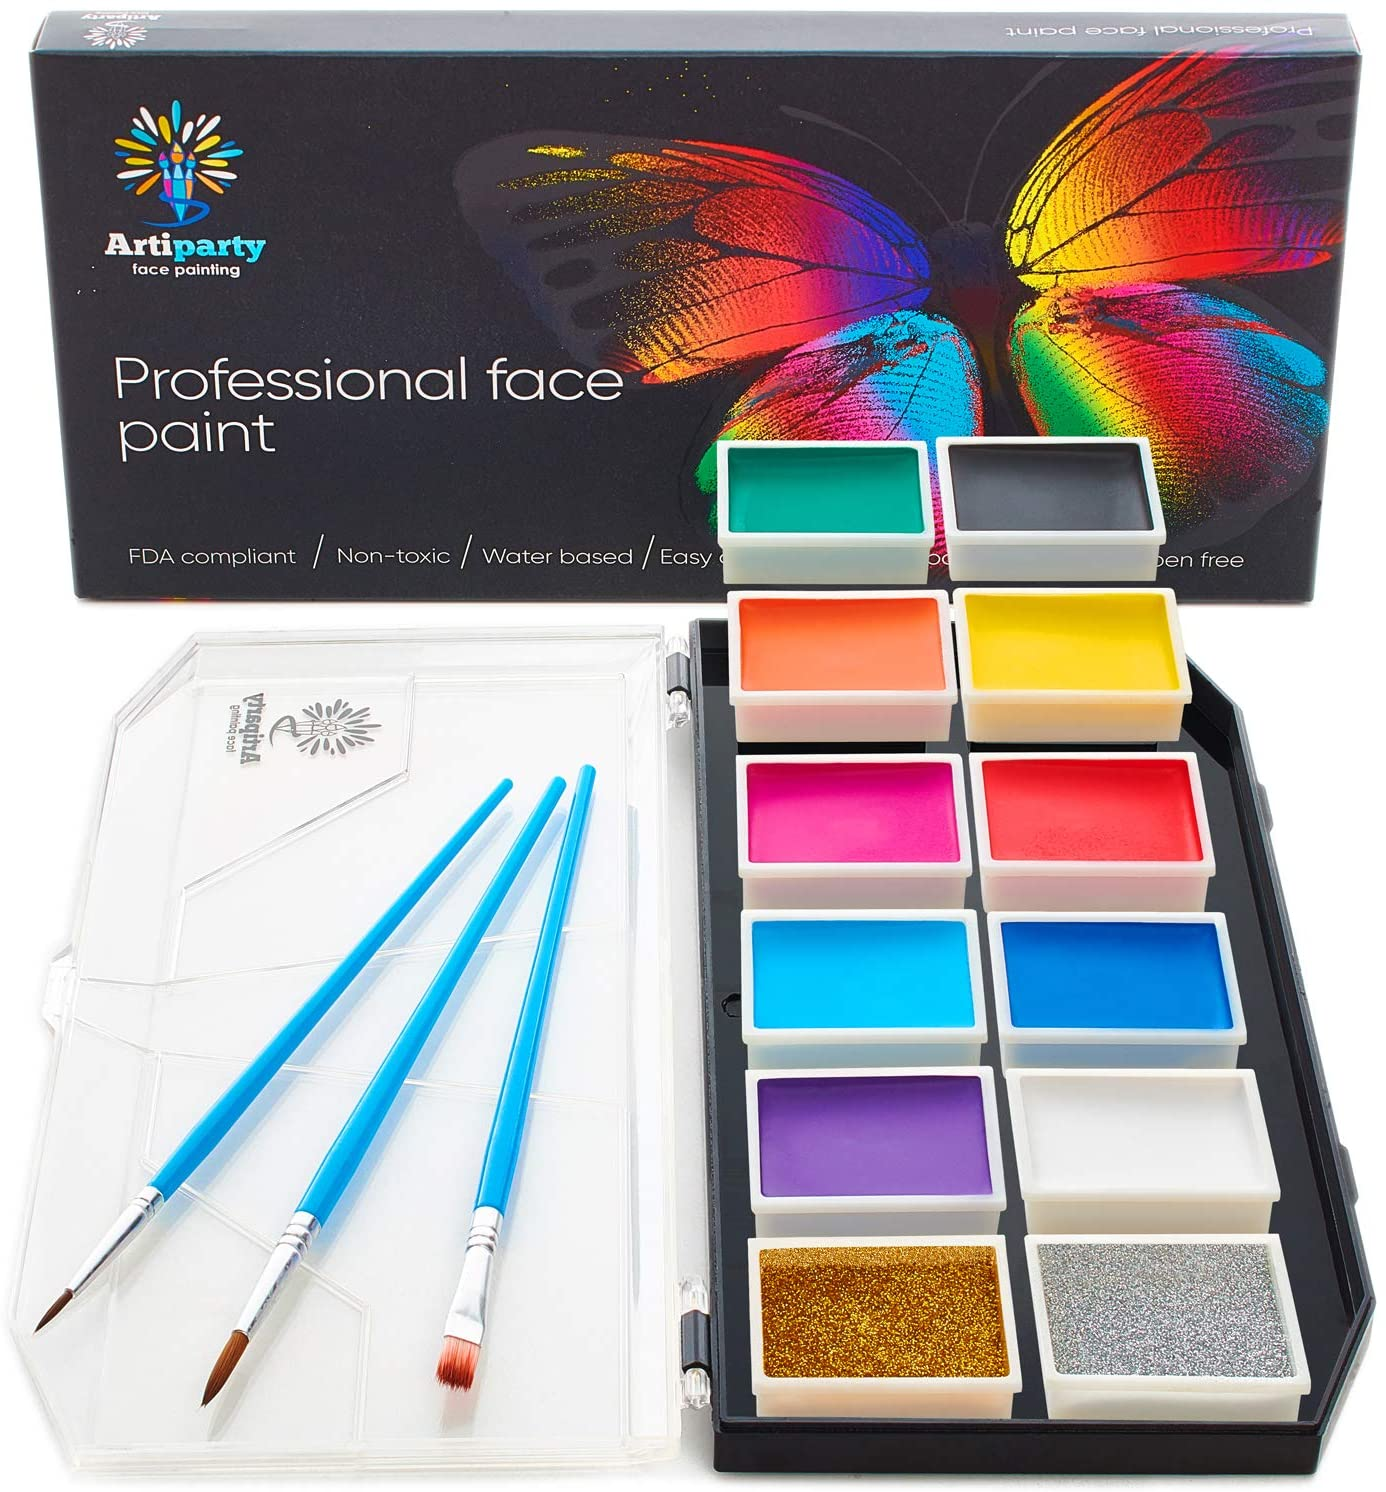 Top 9 Best Face Painting Kits (2020 Reviews & Buying Guide) 8